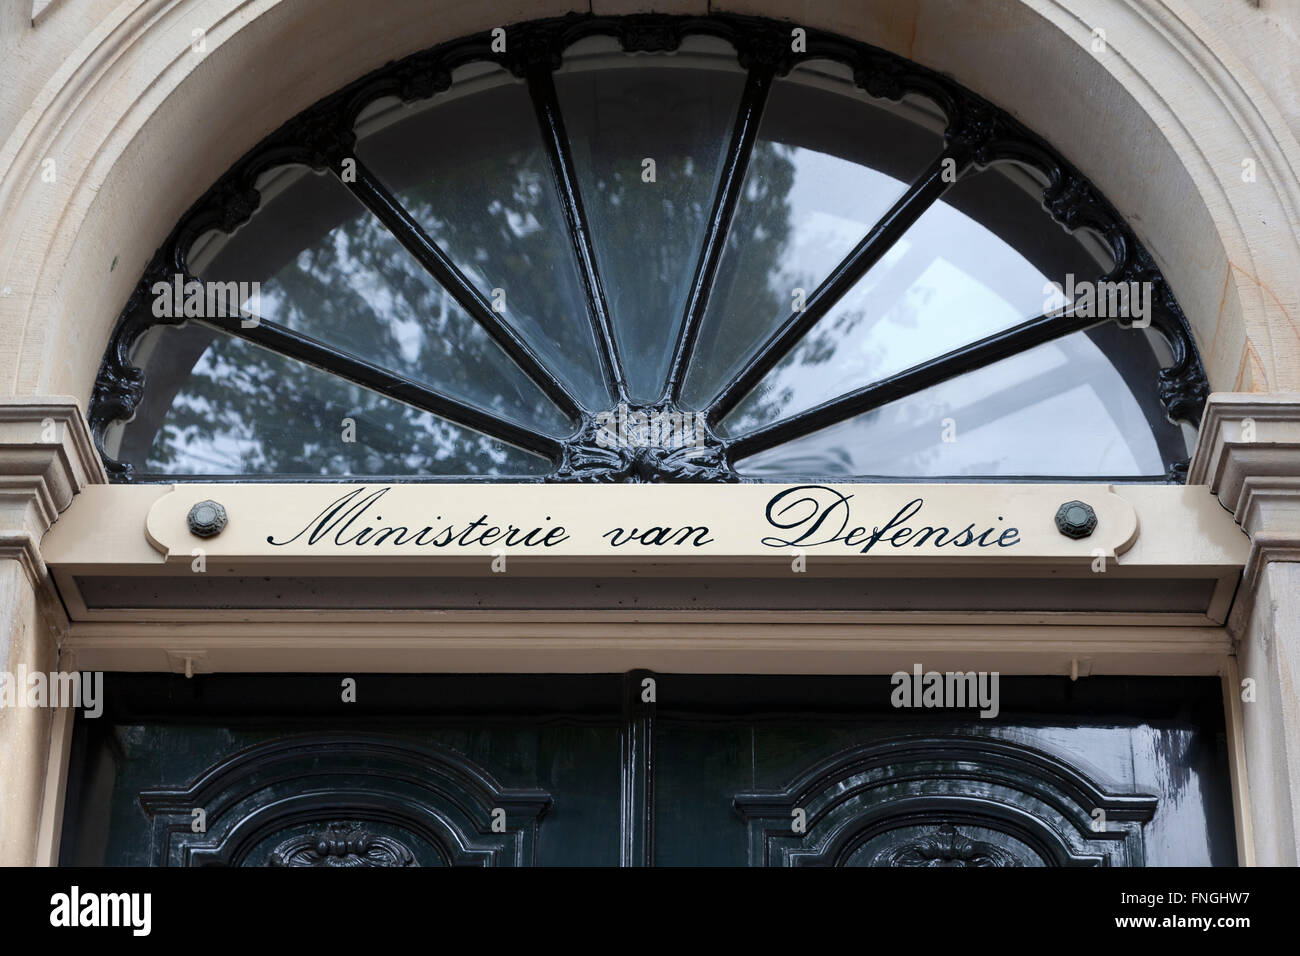 Entrance sign to the Ministry of defense in the Hague - Stock Image